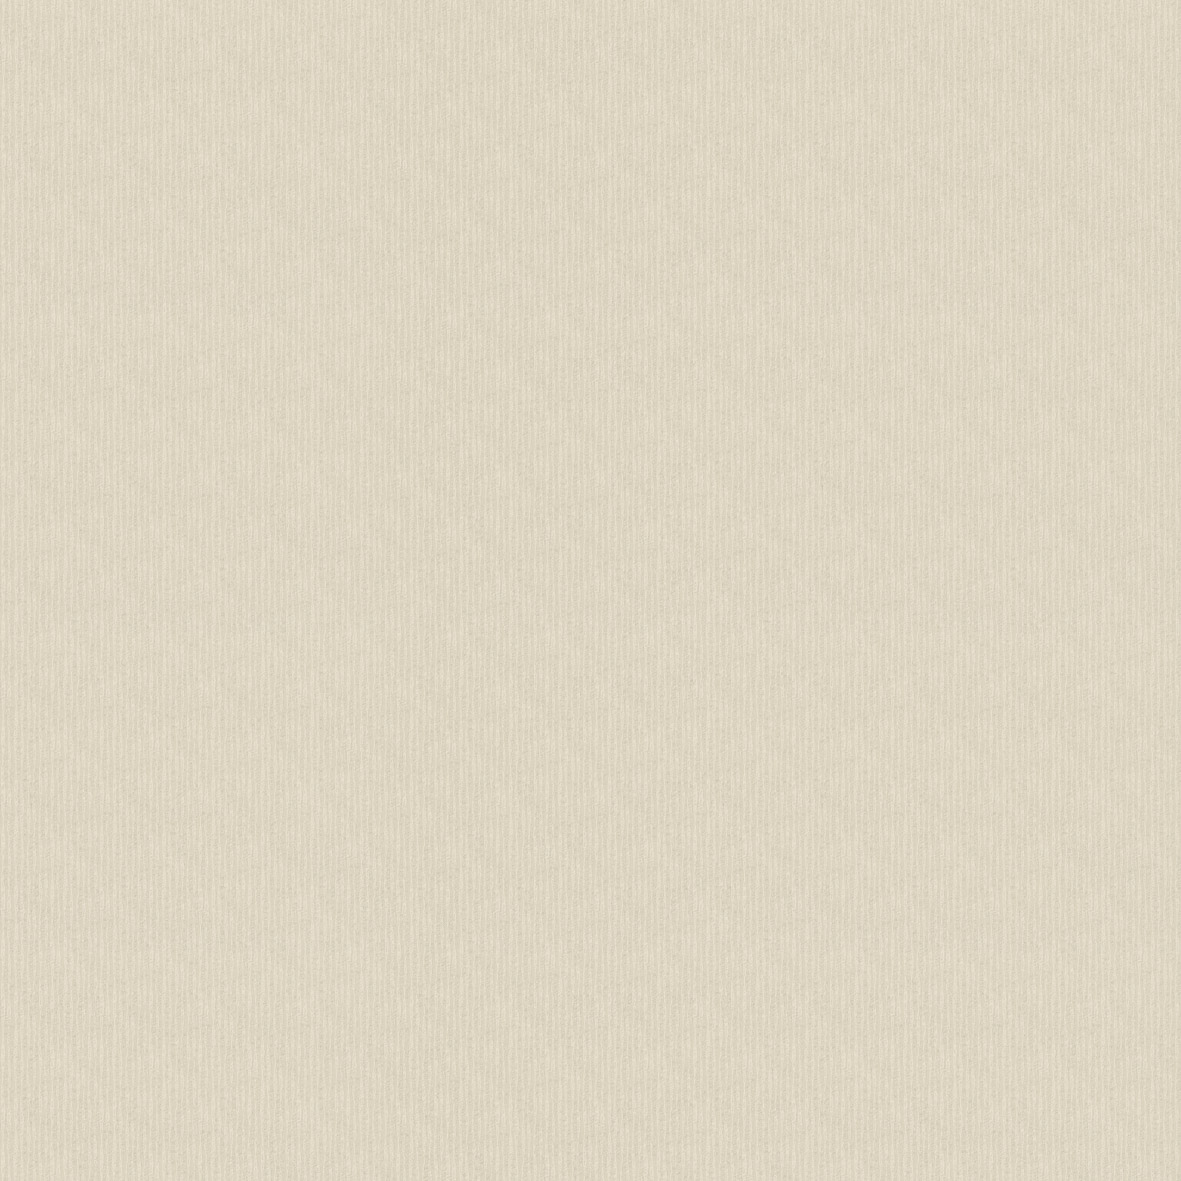 Roller_Swatch_Ribbons_asc_Magnolia_RE36463